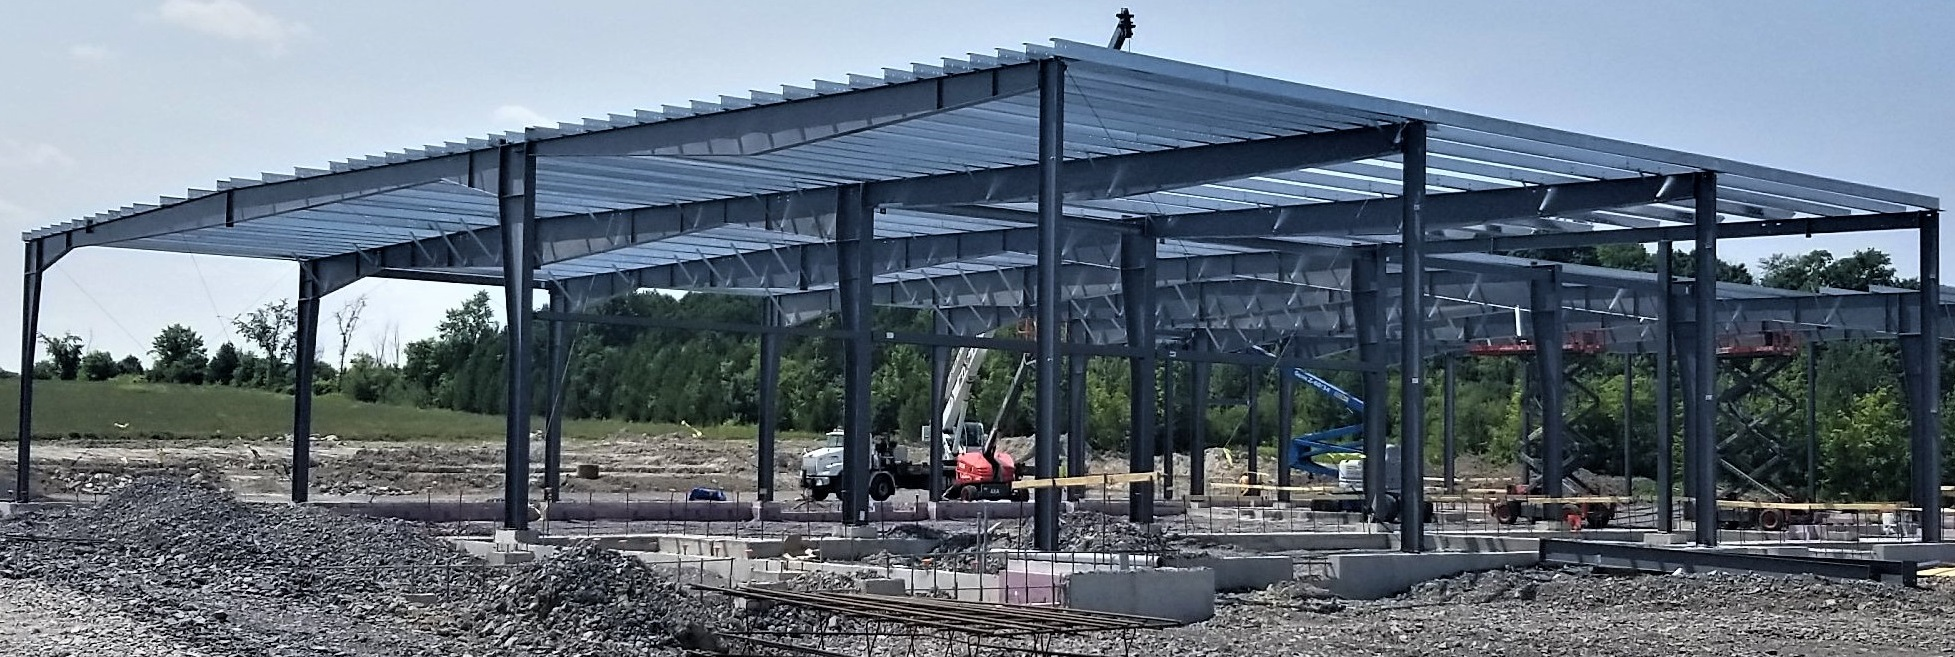 Barrhaven Ford Steel is Standing